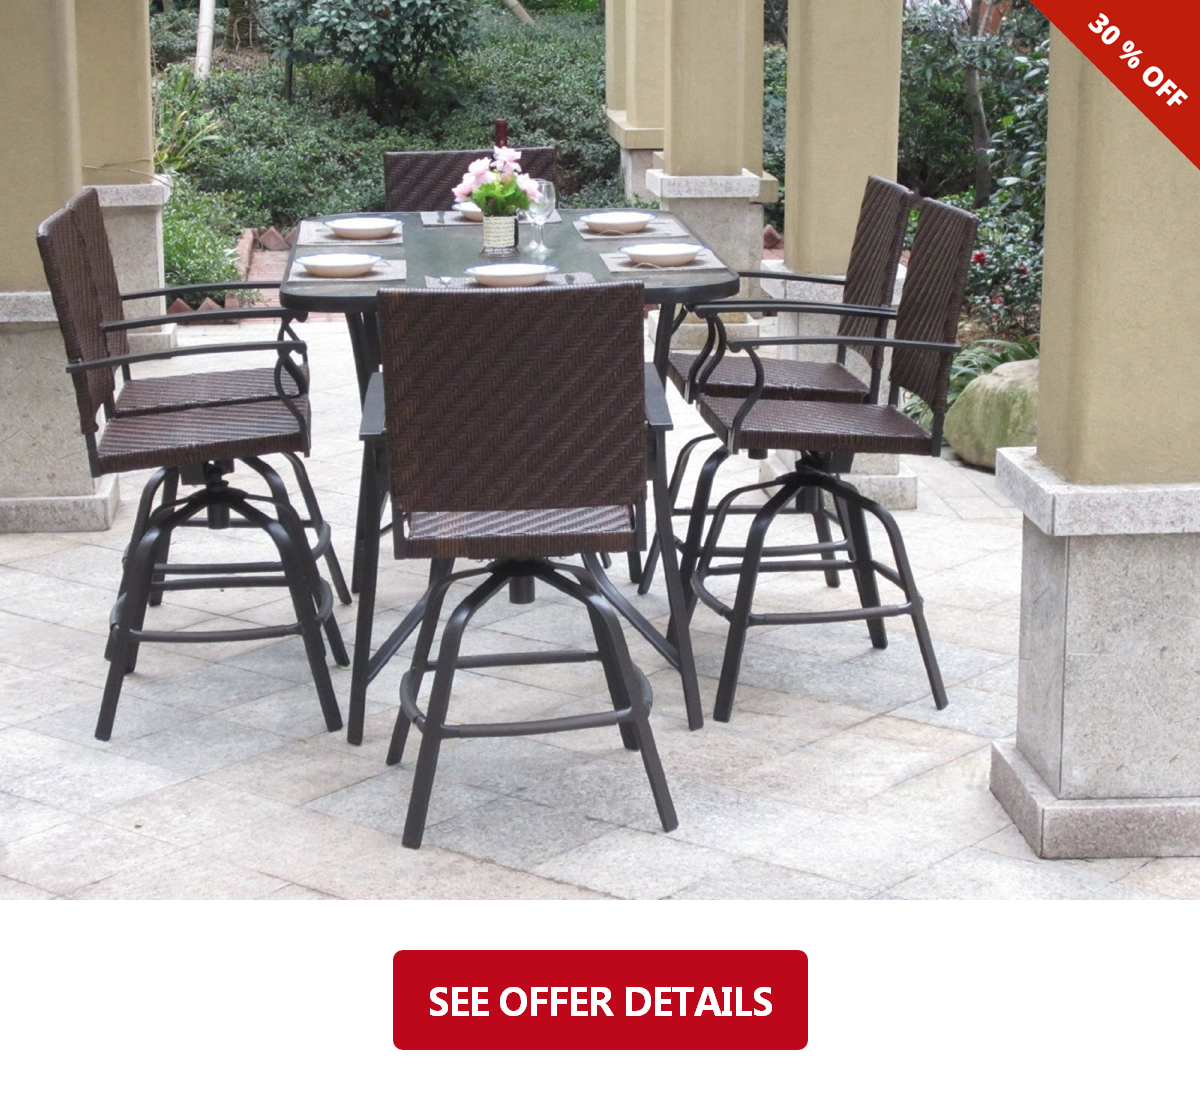 pc handwoven outdoor wicker patio bar dining set lawn and